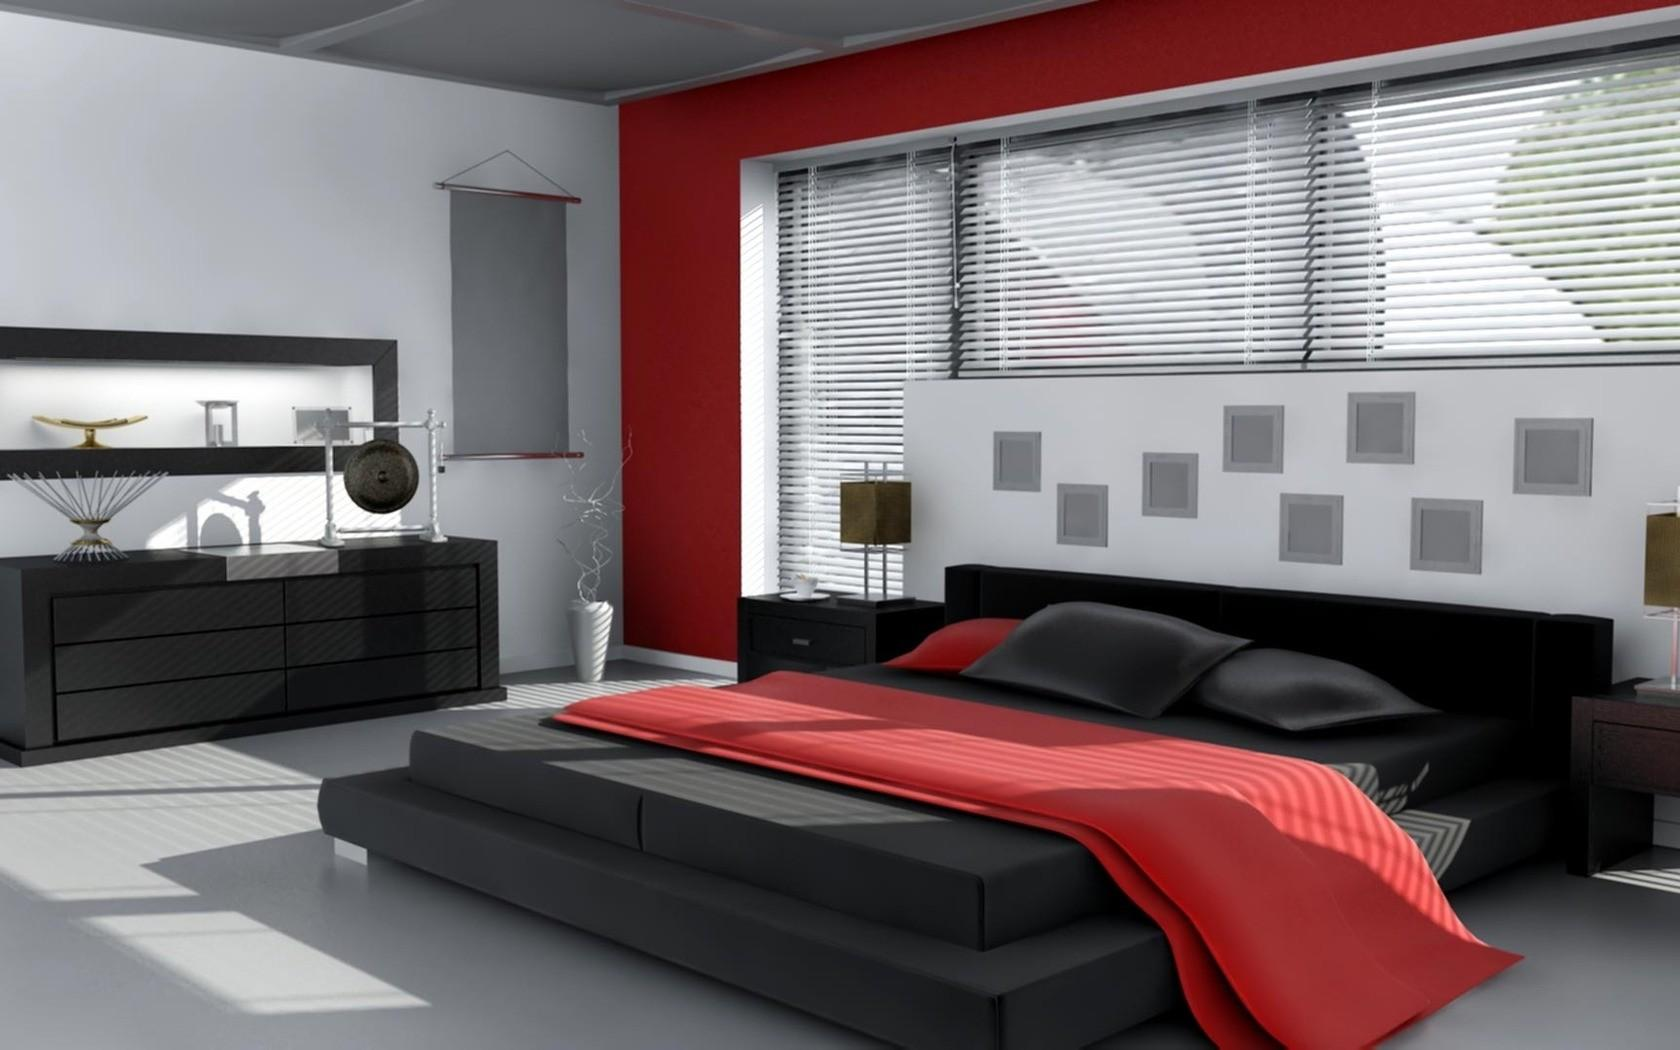 31 Breathtaking Red Bedrooms Ideas That Make A Strong Statement Photographs Decoratorist